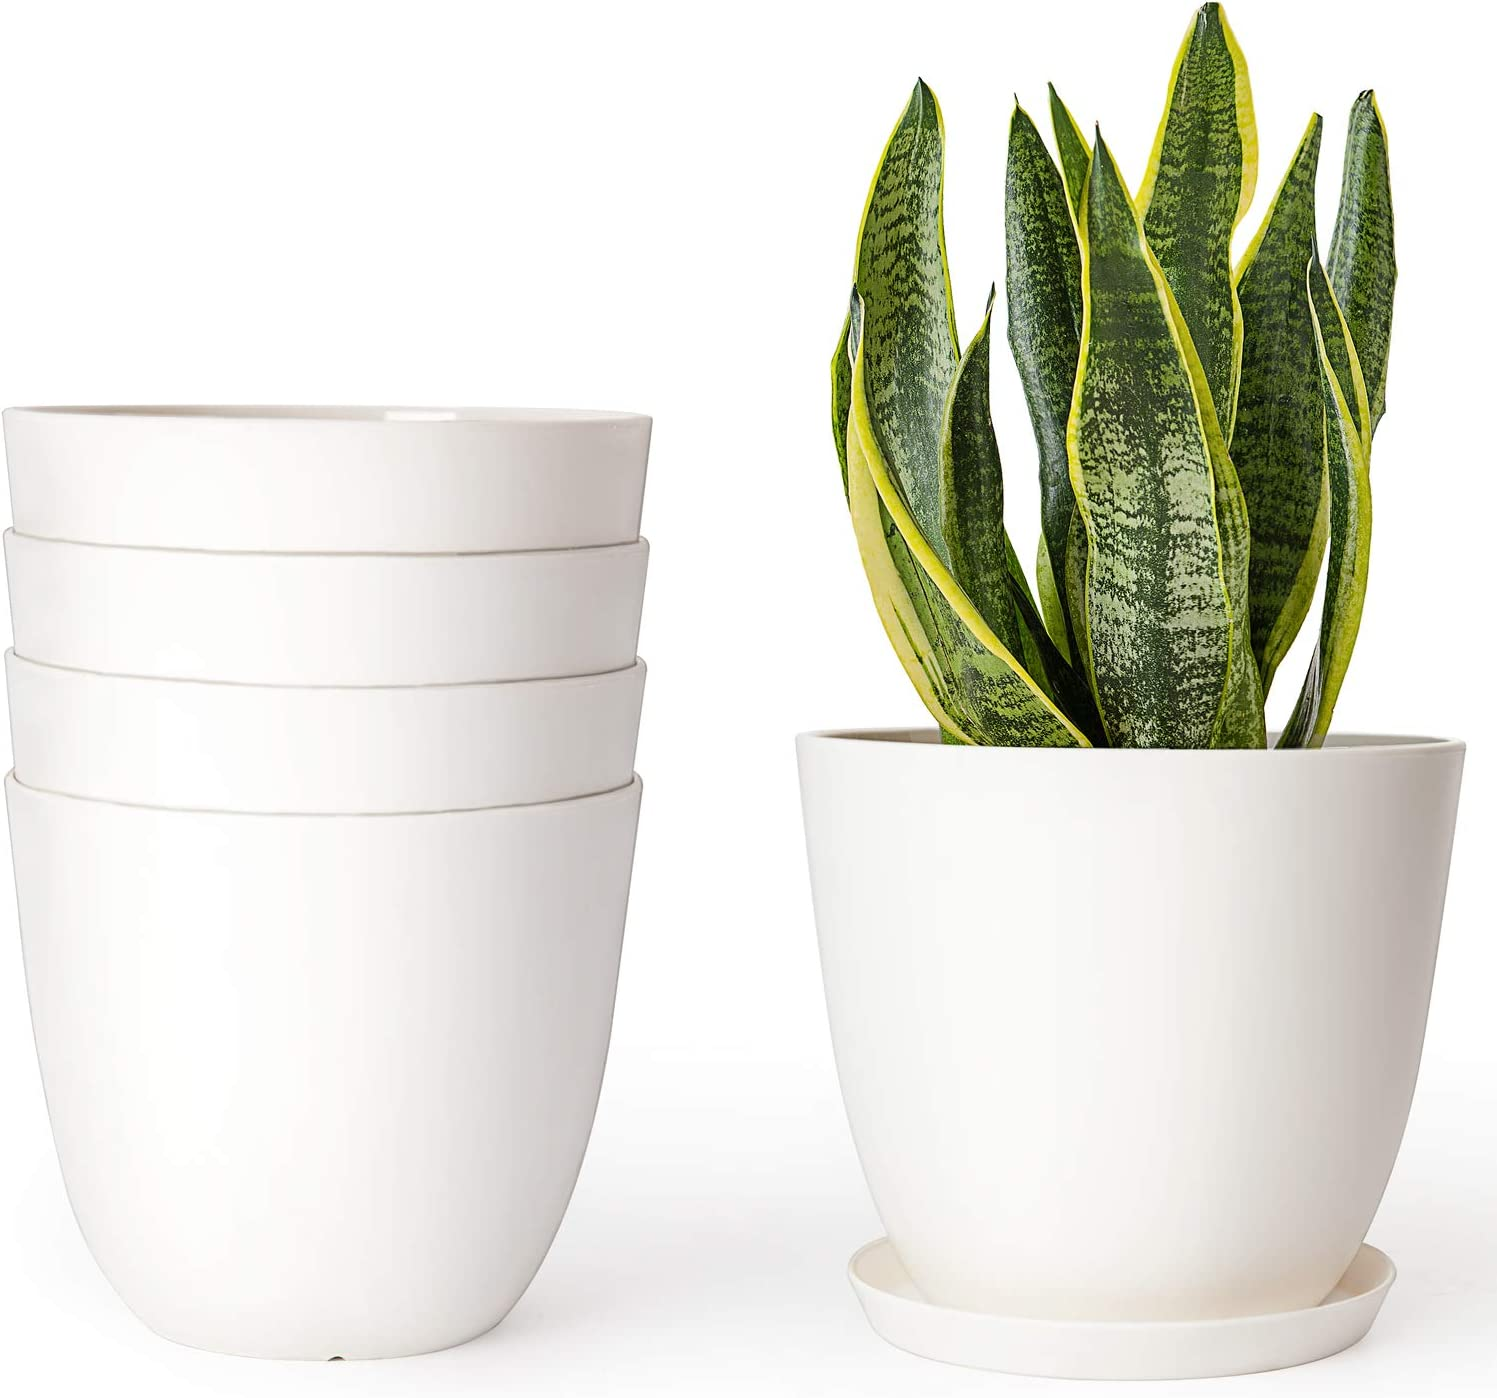 Amazon Com Mkono Plastic Planters With Saucers Indoor Set Of 5 Flower Plant Pots Modern Decorative Gardening Pot With Drainage For All House Plants Herbs Foliage Plant And Seeding Nursery Cream White 6 5